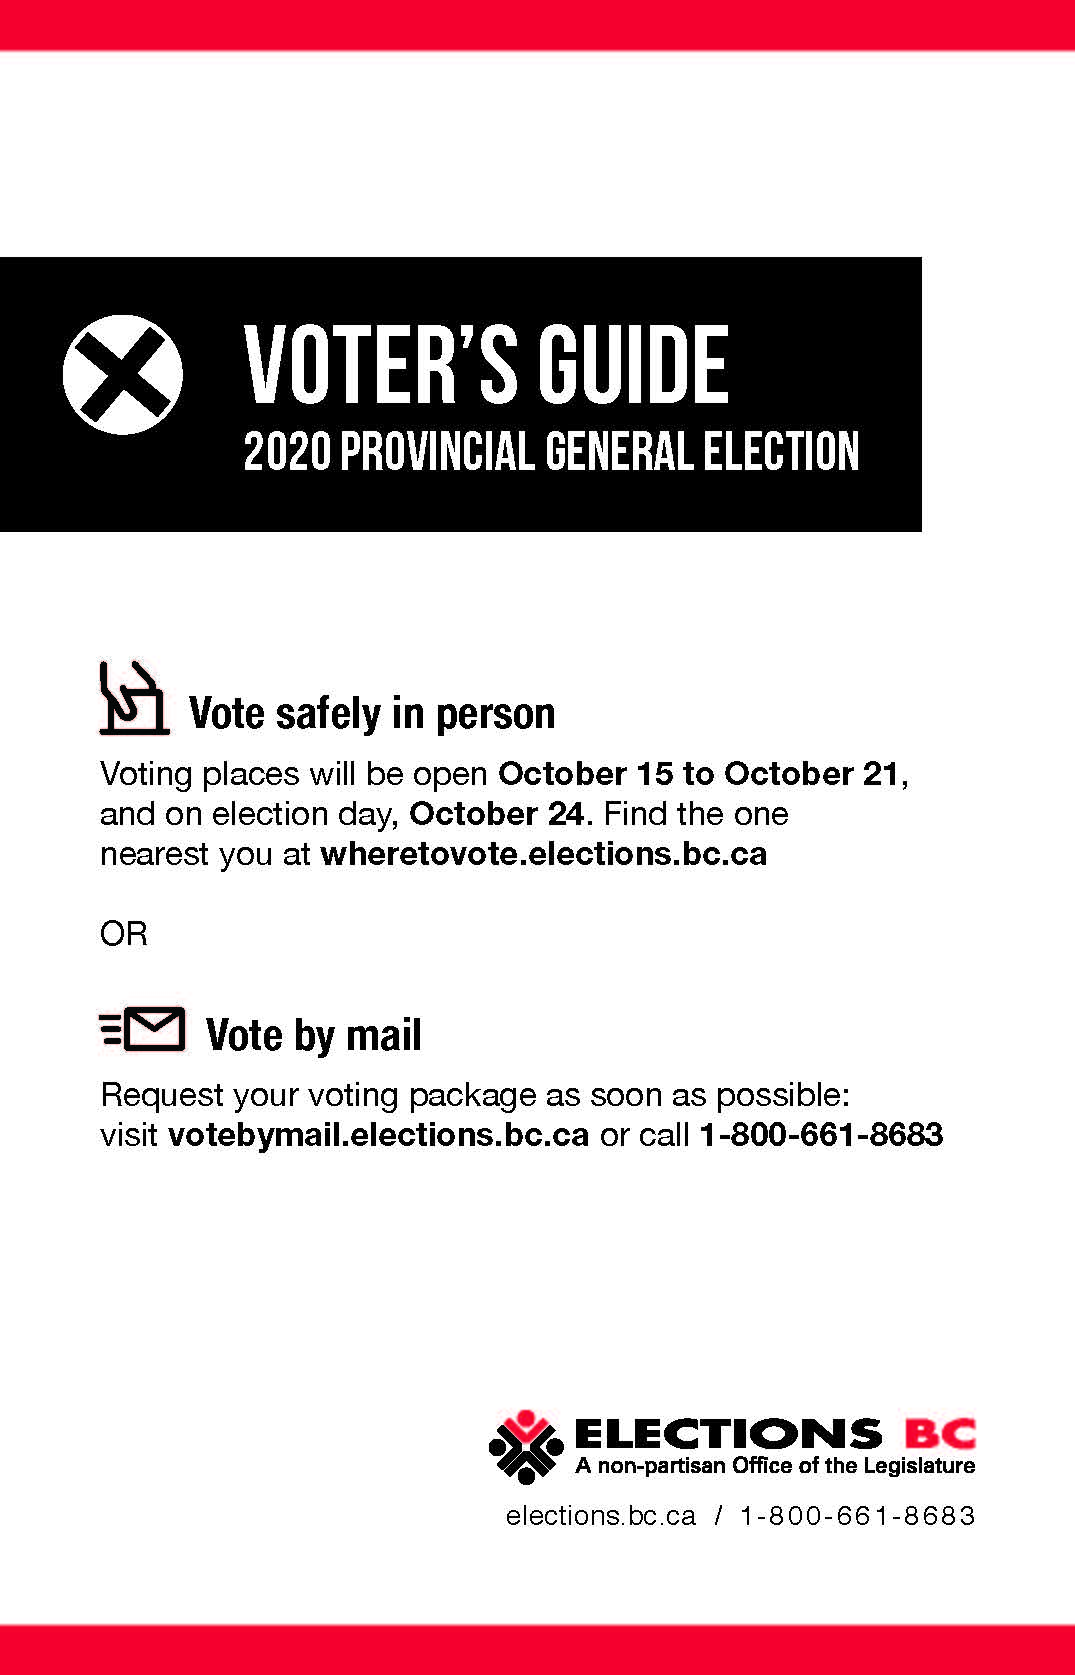 Voter's Guide cover